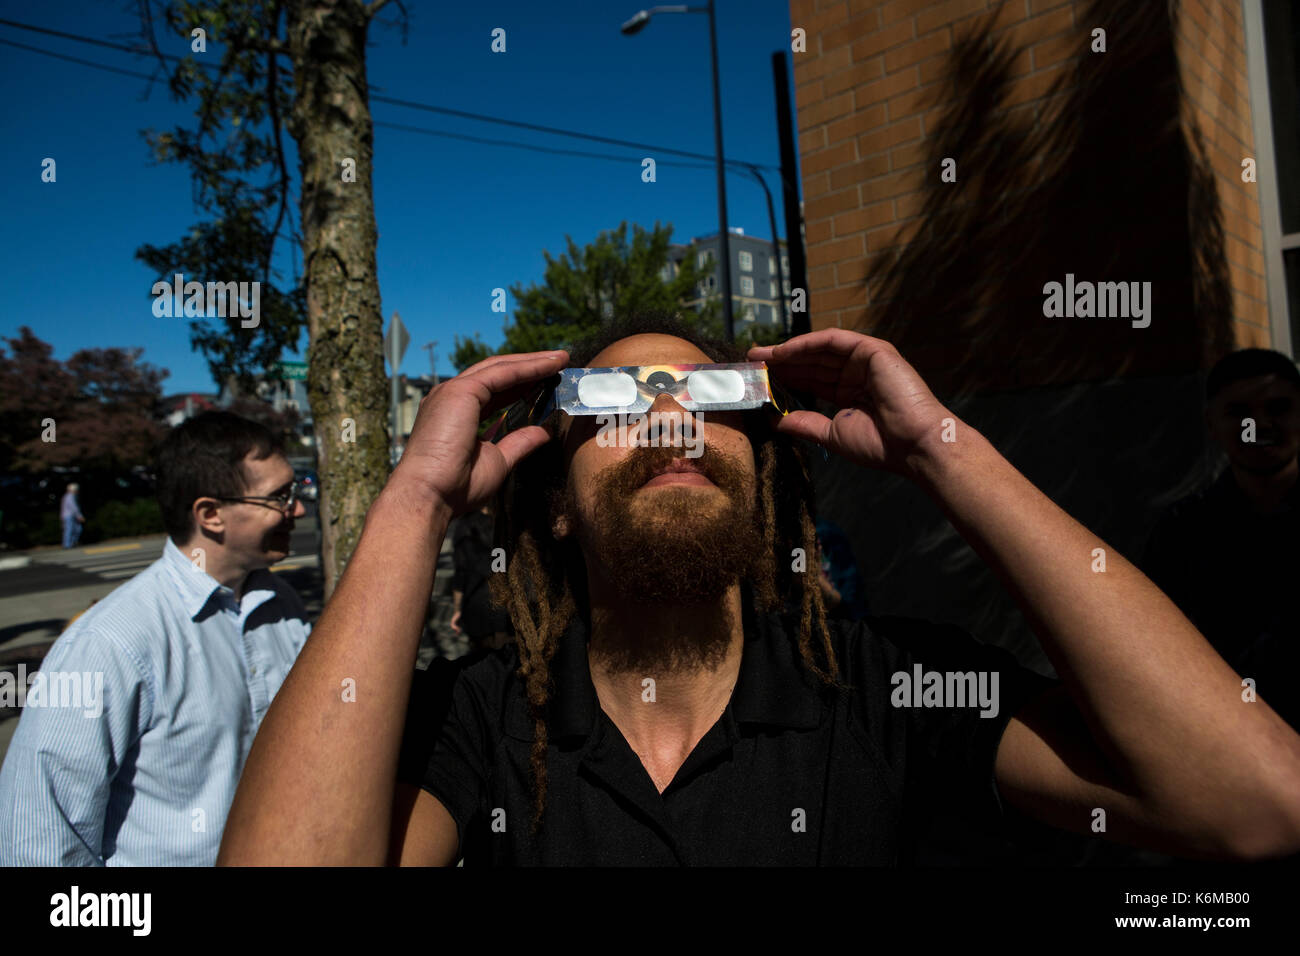 People gather on the streets of Seattle, WA, USA  to watch solar eclipse in August of 2017. - Stock Image